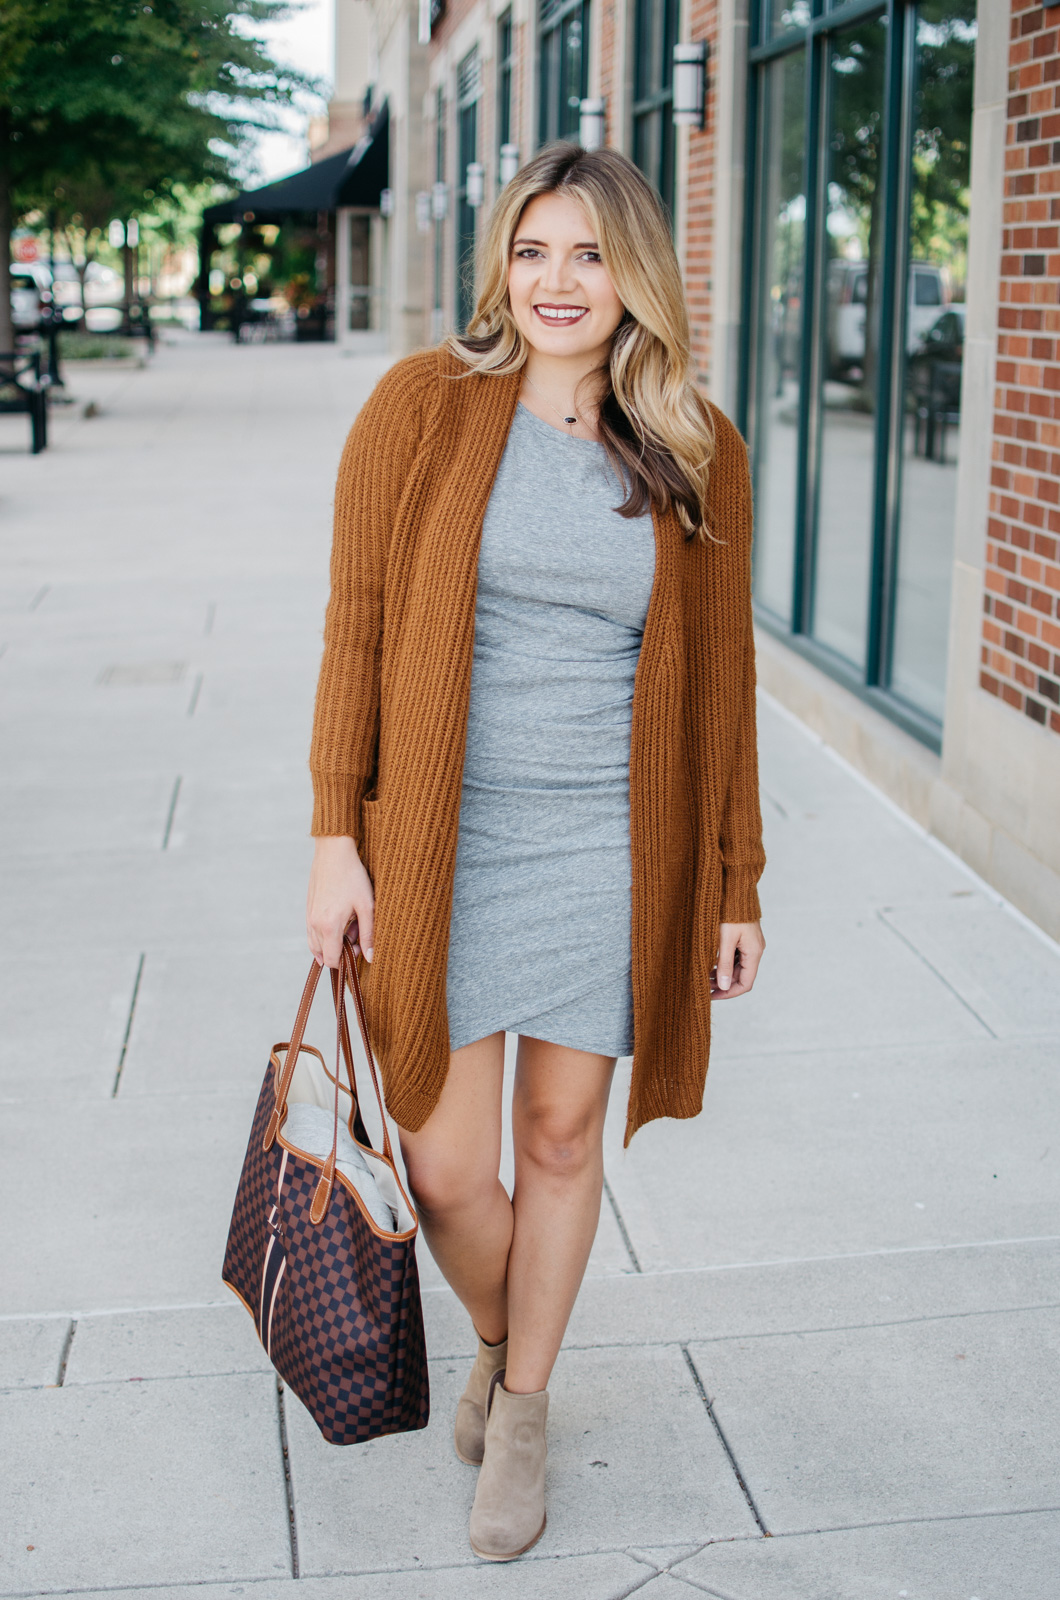 ruched dress casual outfit - two ways to wear a ruched dress | Click through to see how to wear this dress for date night! bylaurenm.com